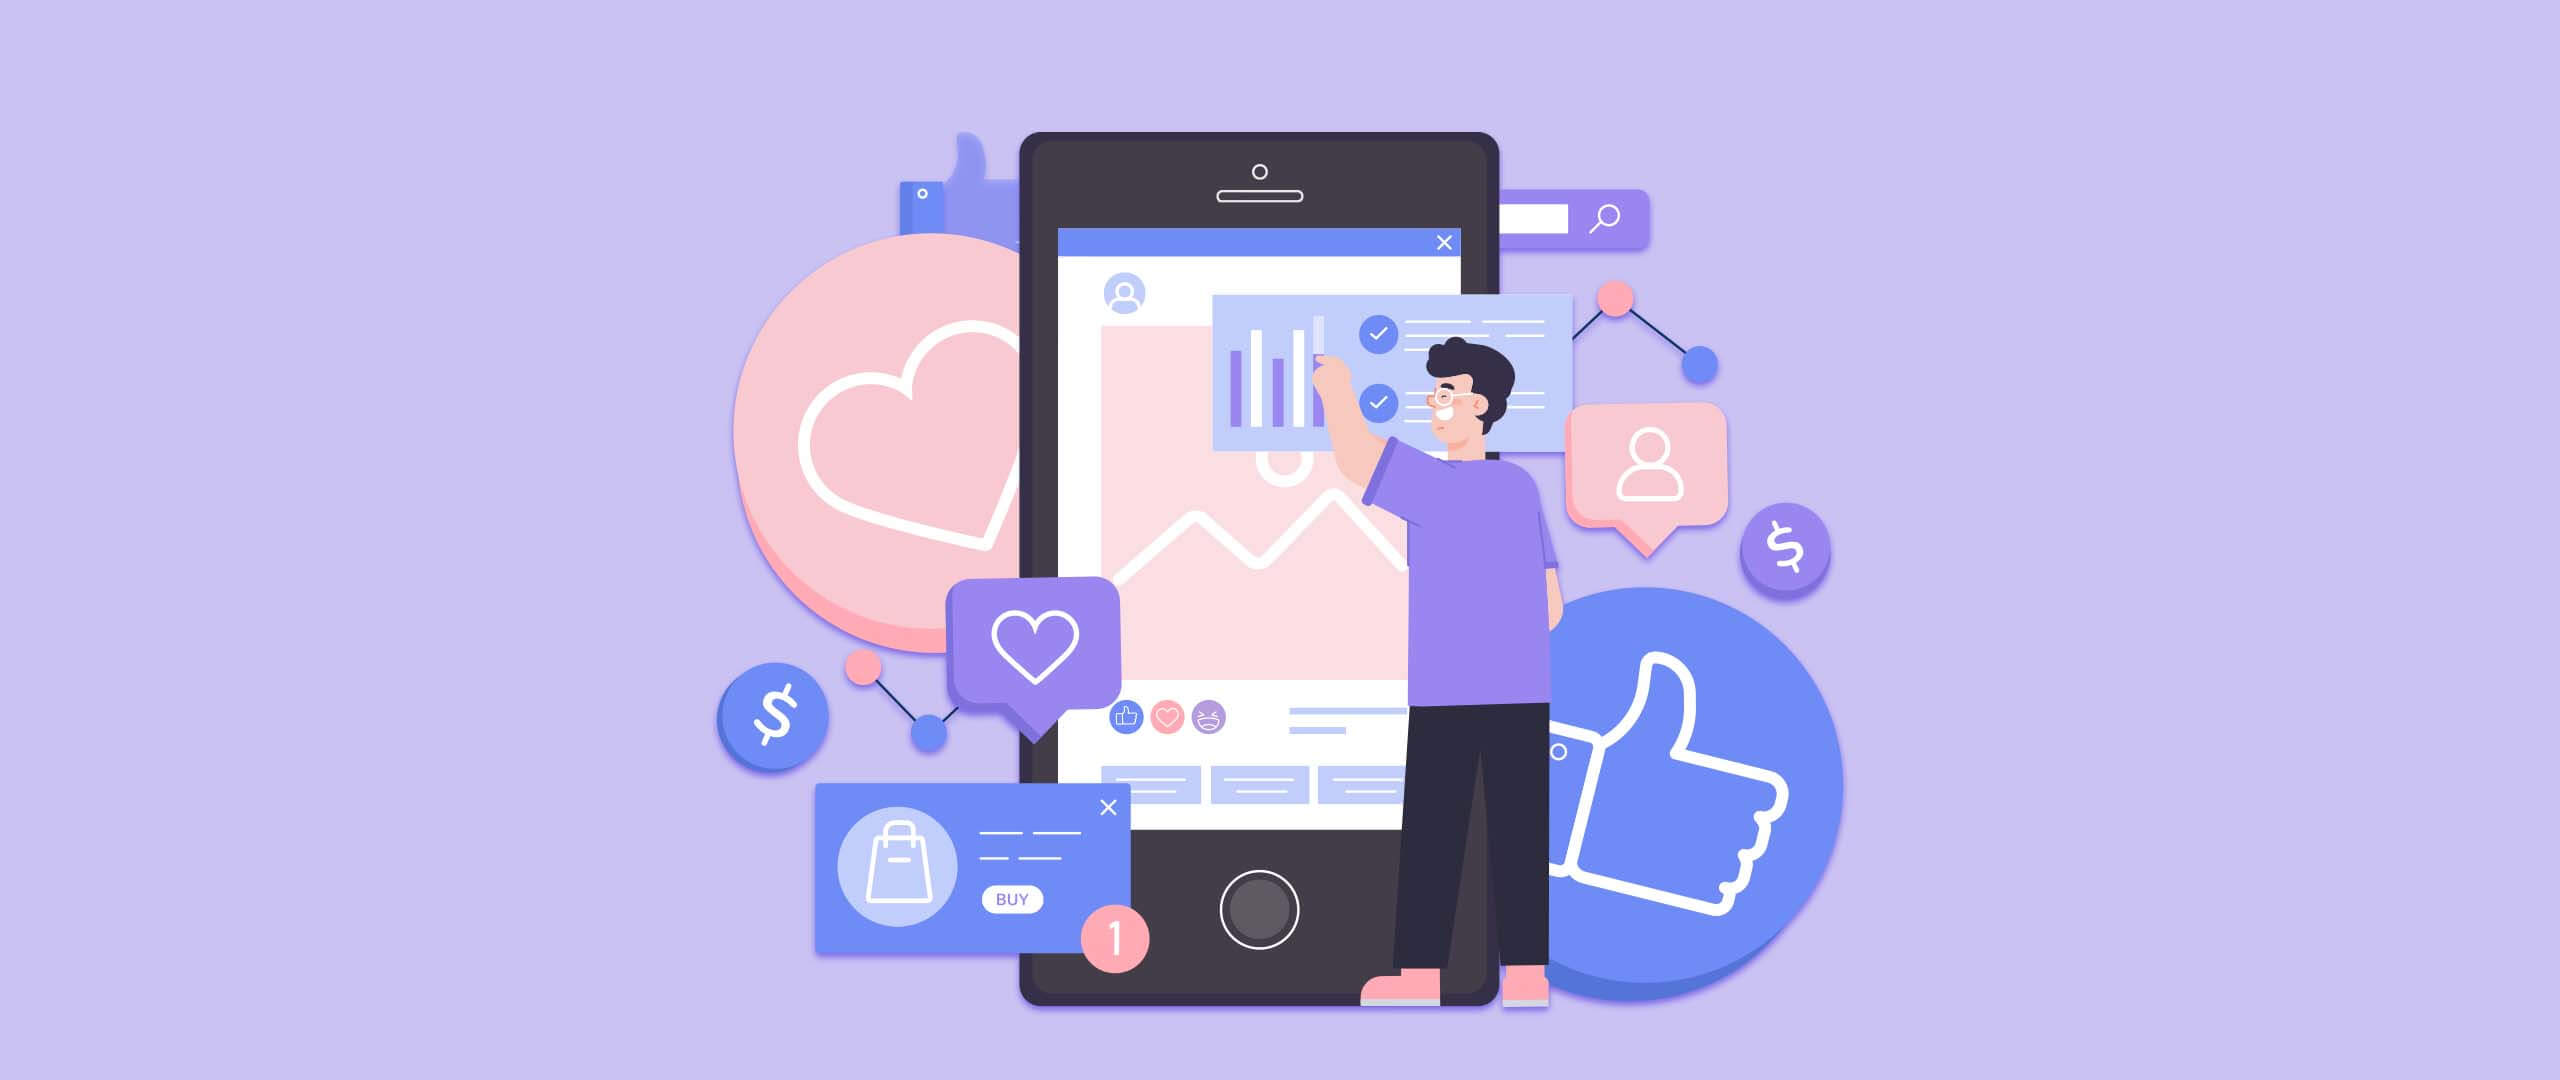 Top 7 Social Media Growth Strategies For Your Business in 2020